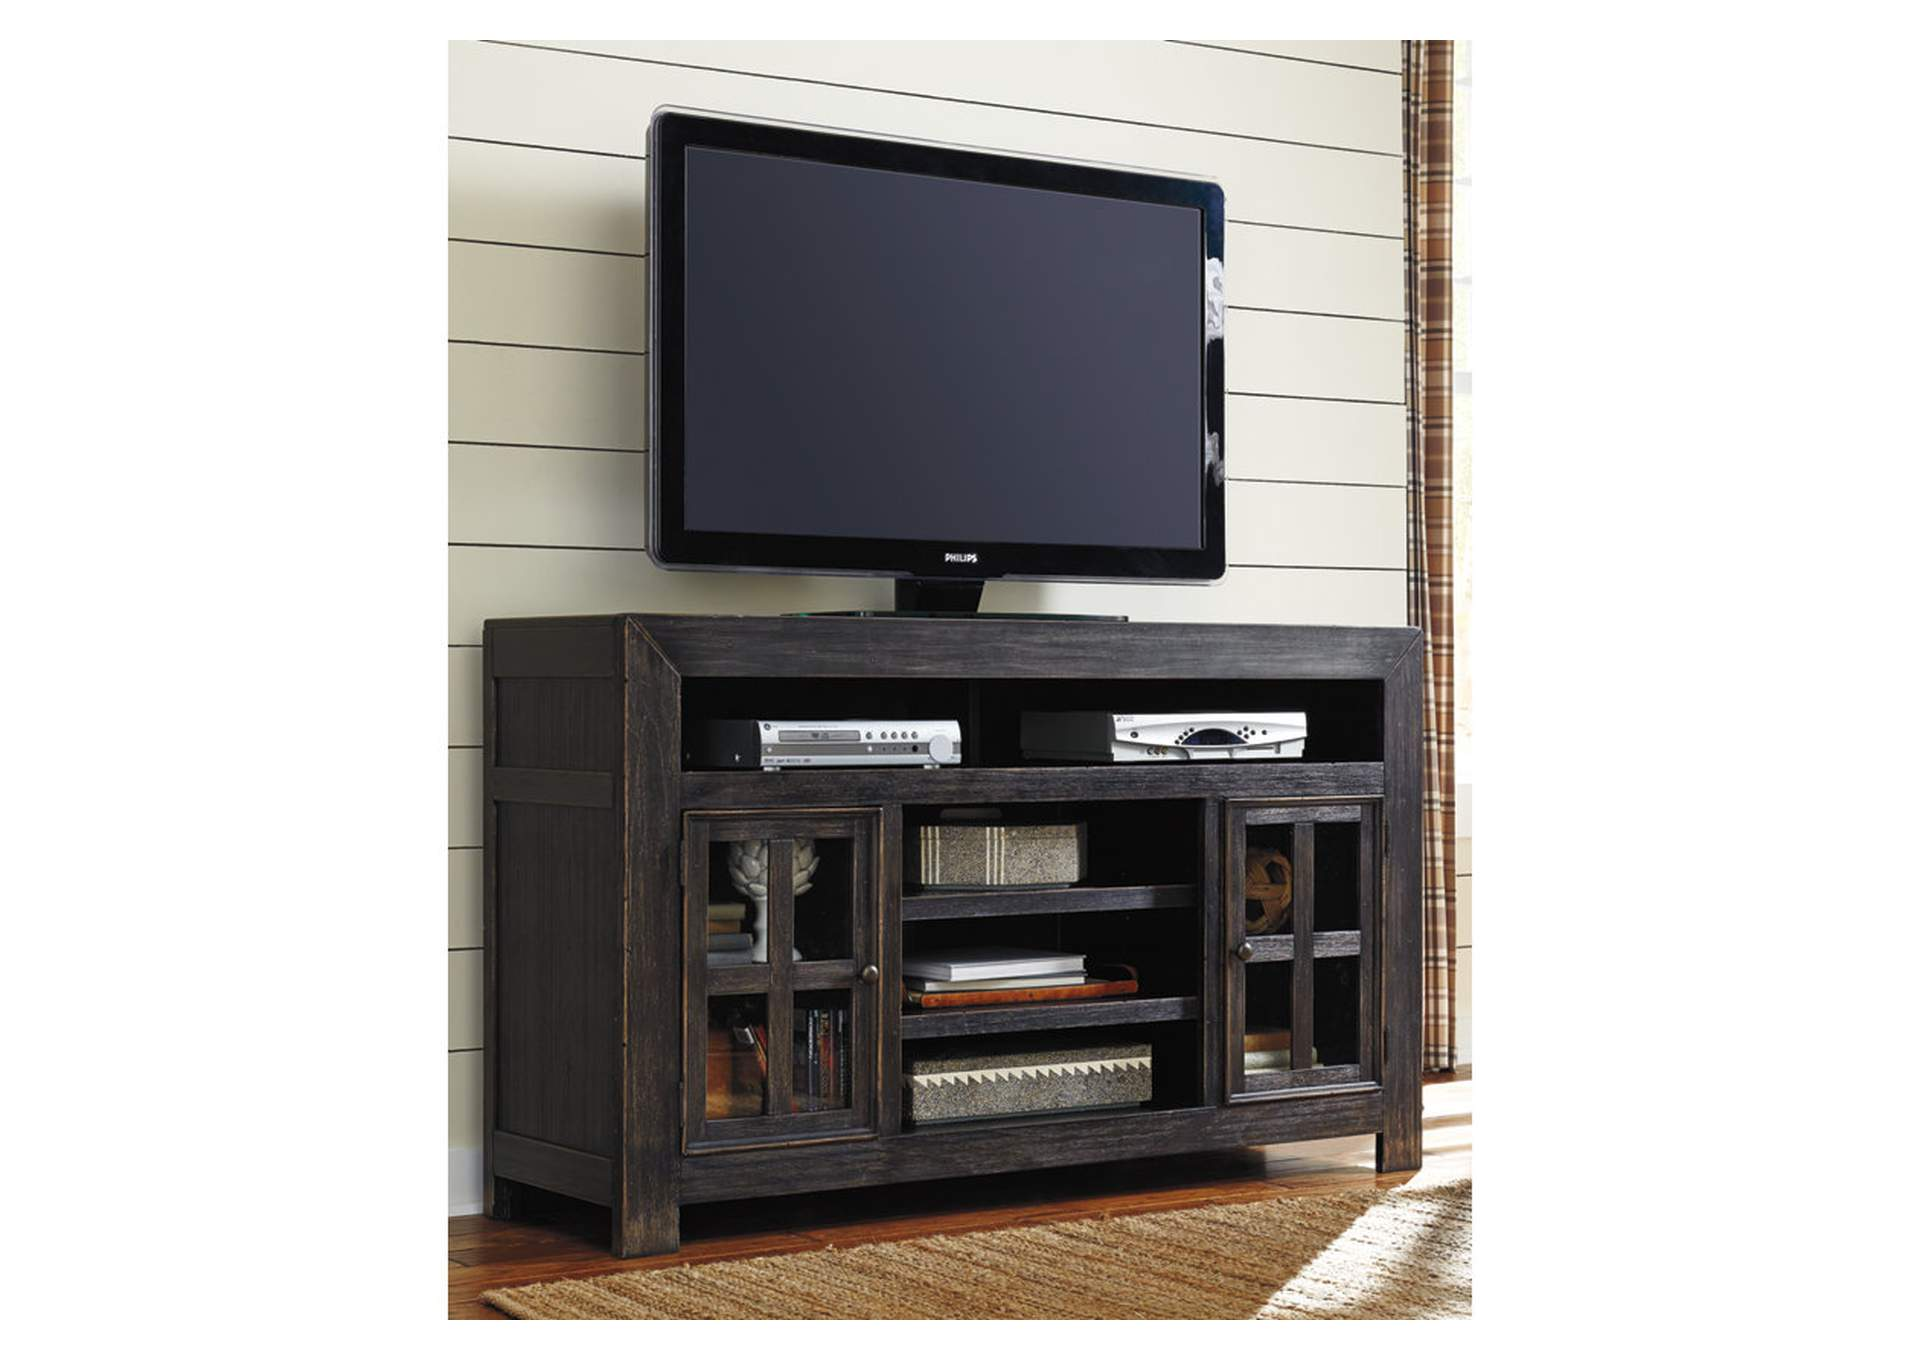 "Gavelston Black 61"" TV Stand,Signature Design By Ashley"